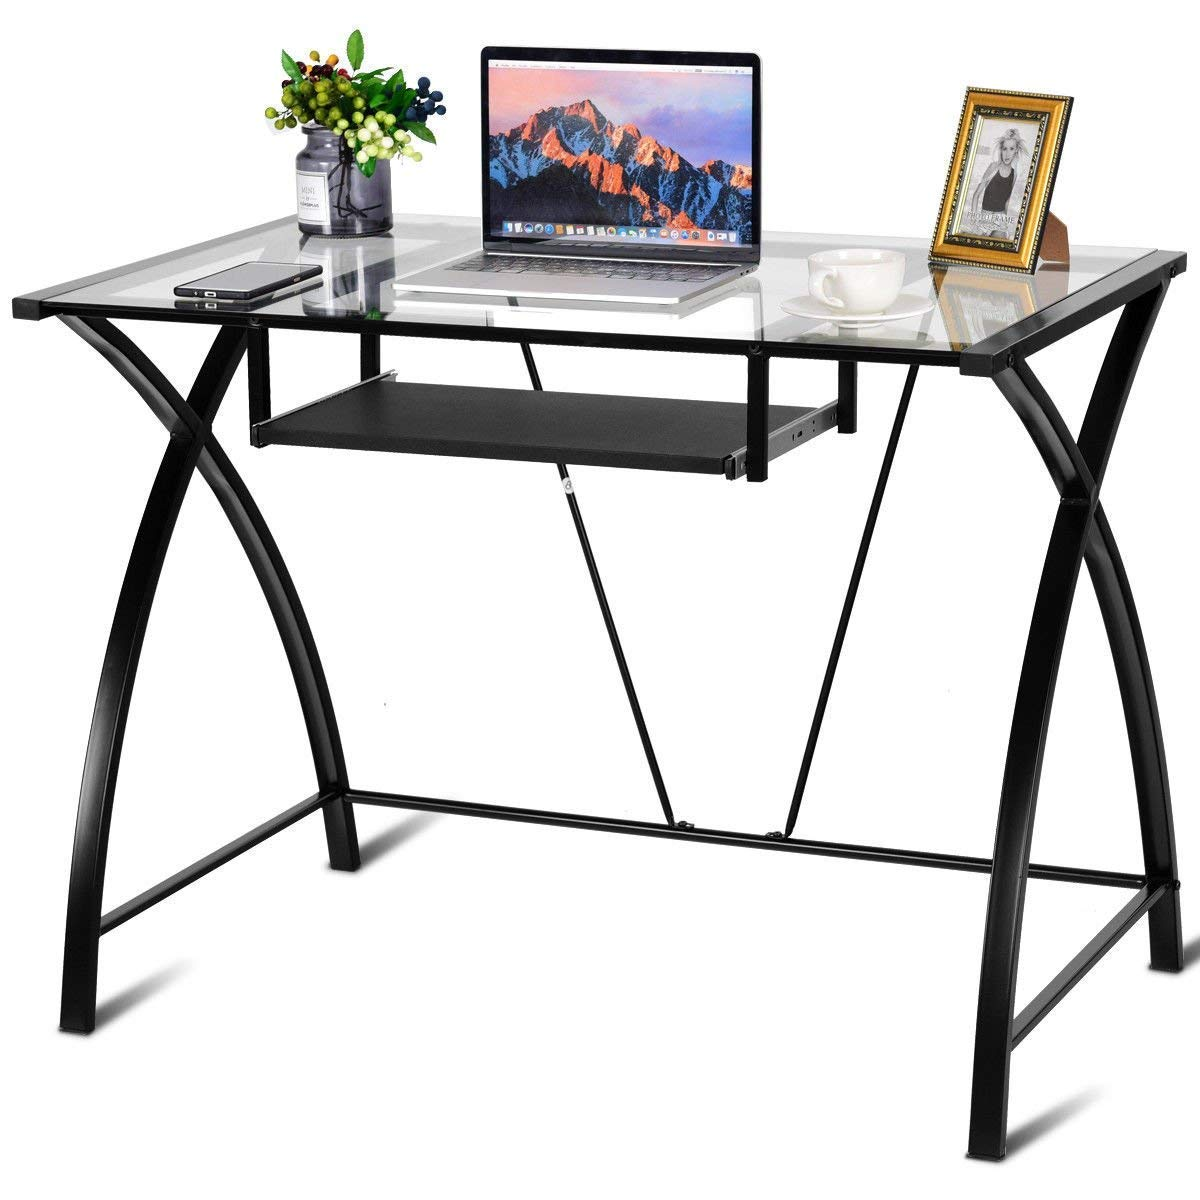 Clear Glass Top Computer Desk w/Pull-Out Keyboard Tray Home Office Furniture